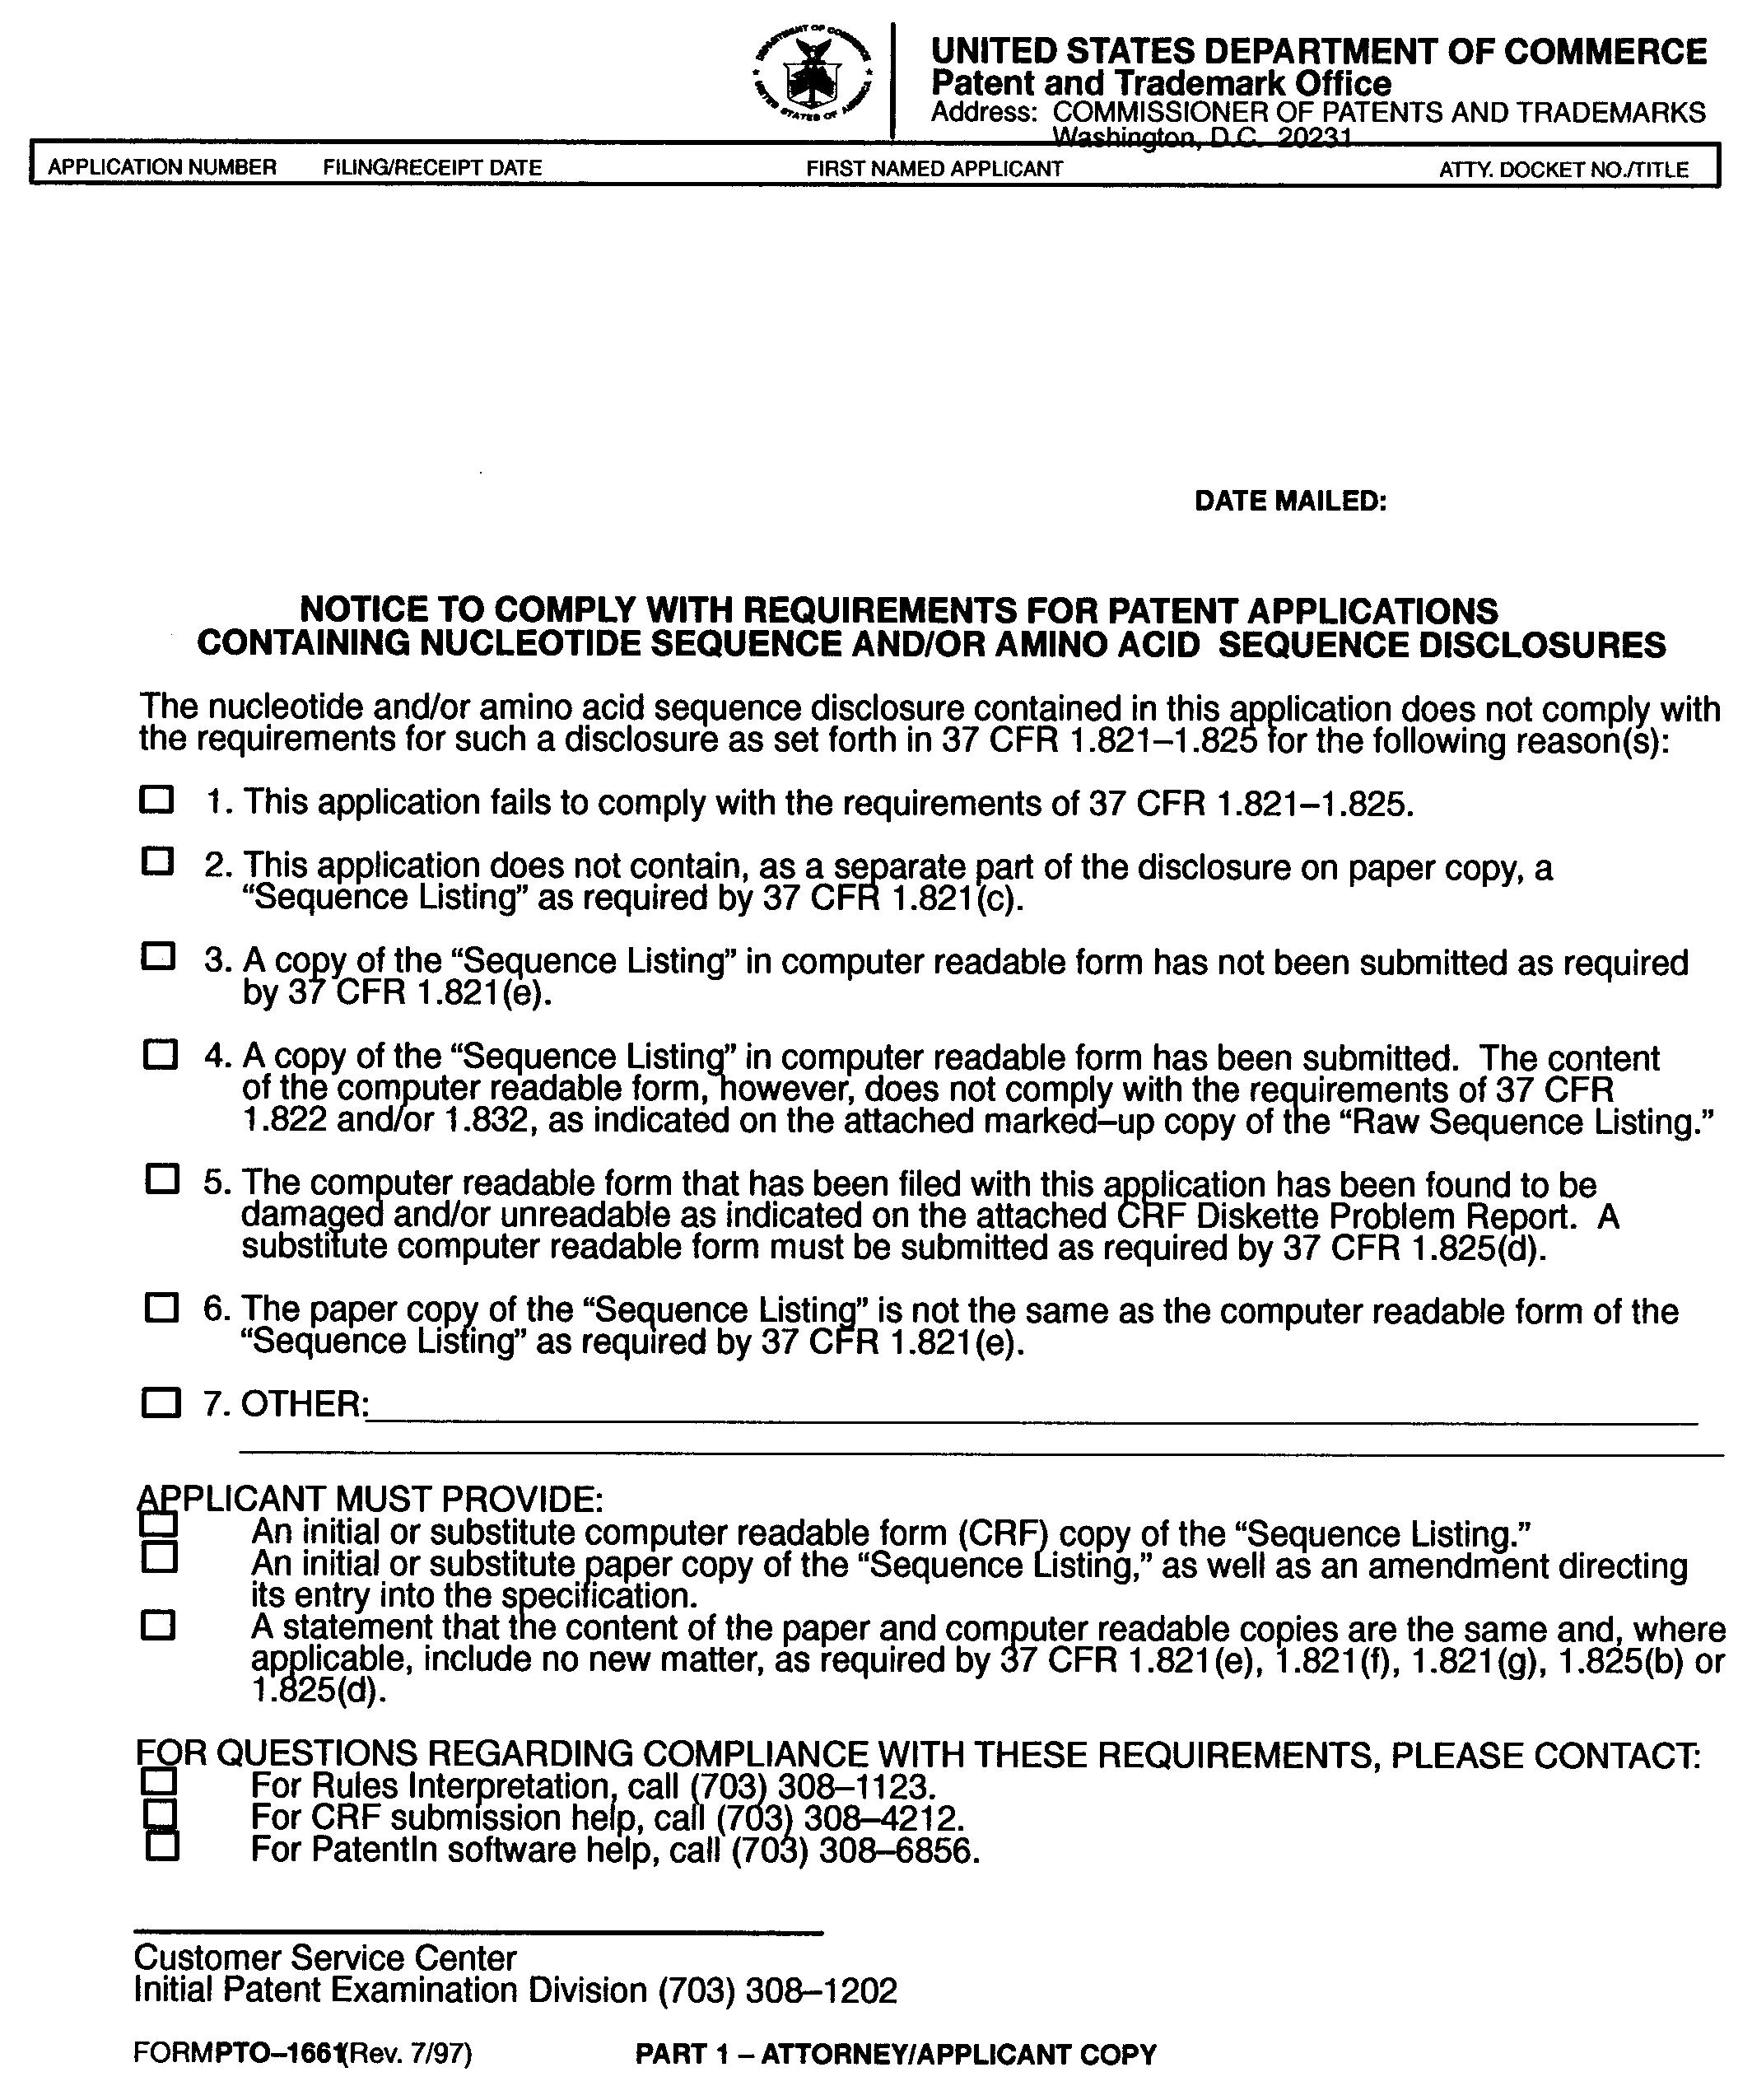 MPEP 2427.02: Notice To Comply, July 2014 (BitLaw)